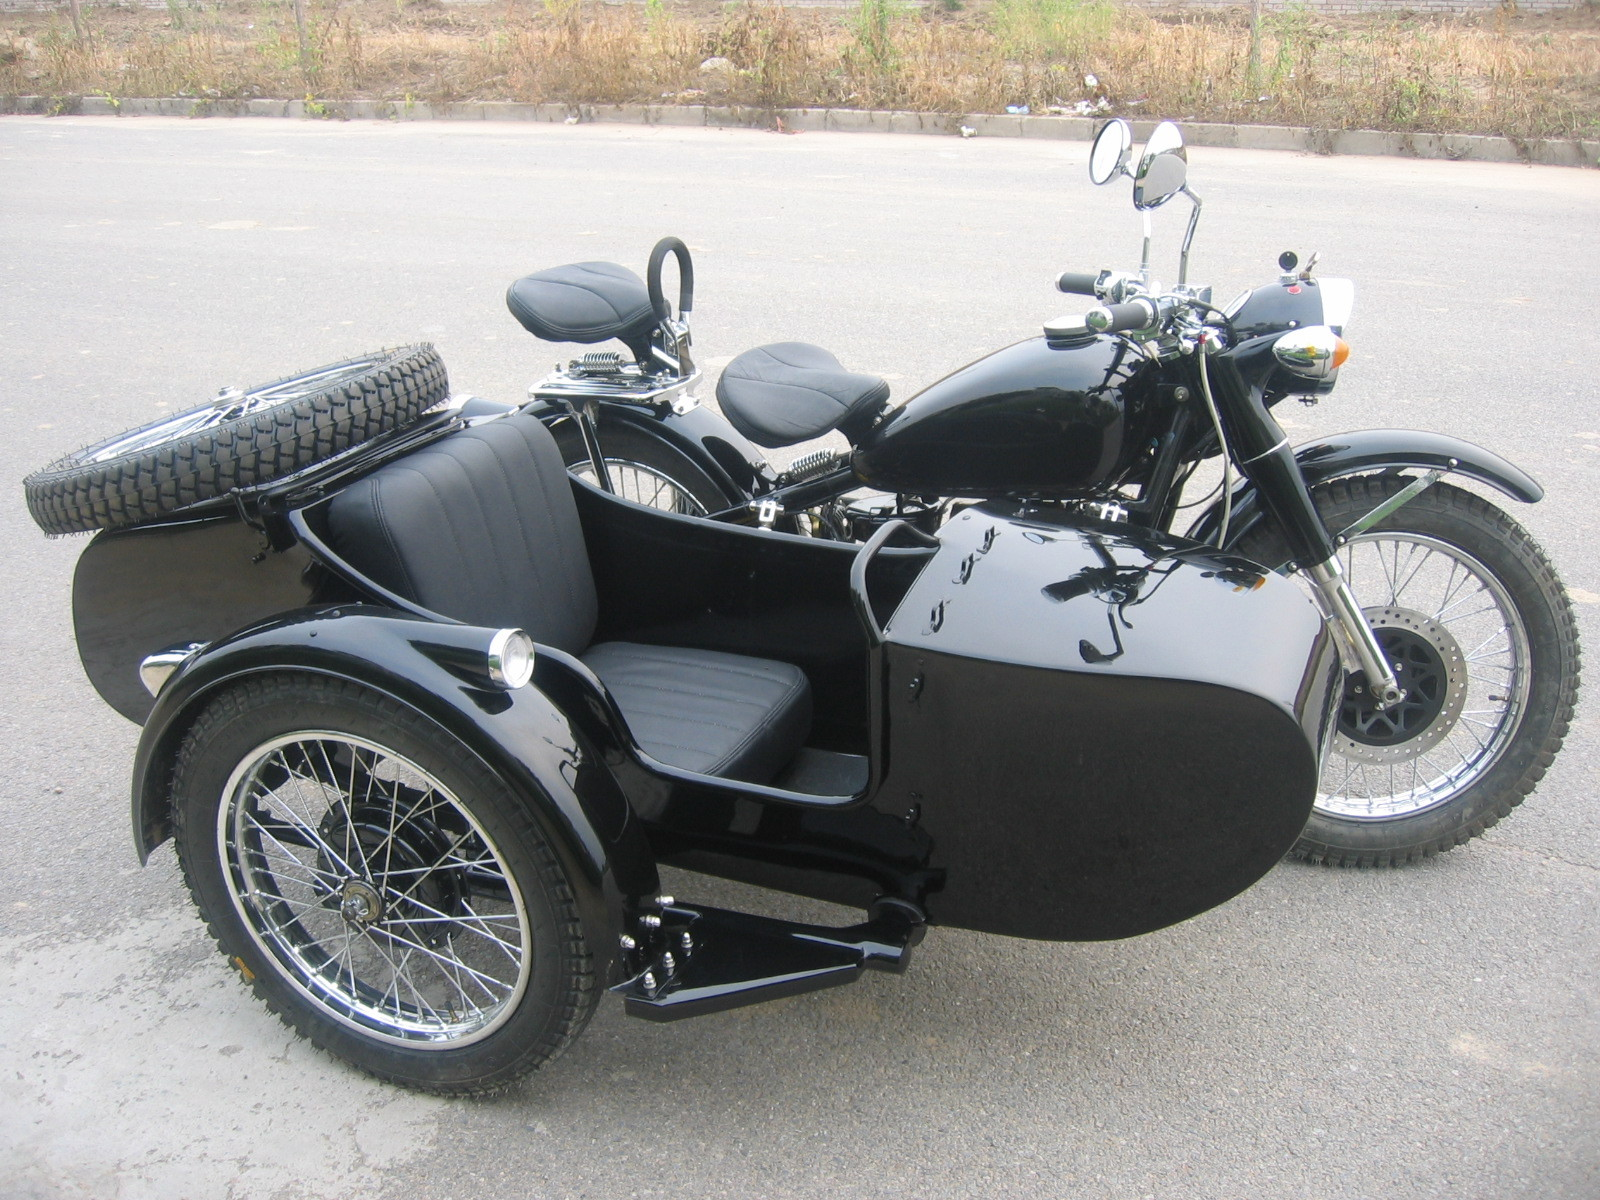 Bikes With Sidecars For Sale Luke s sidecar shop can offer